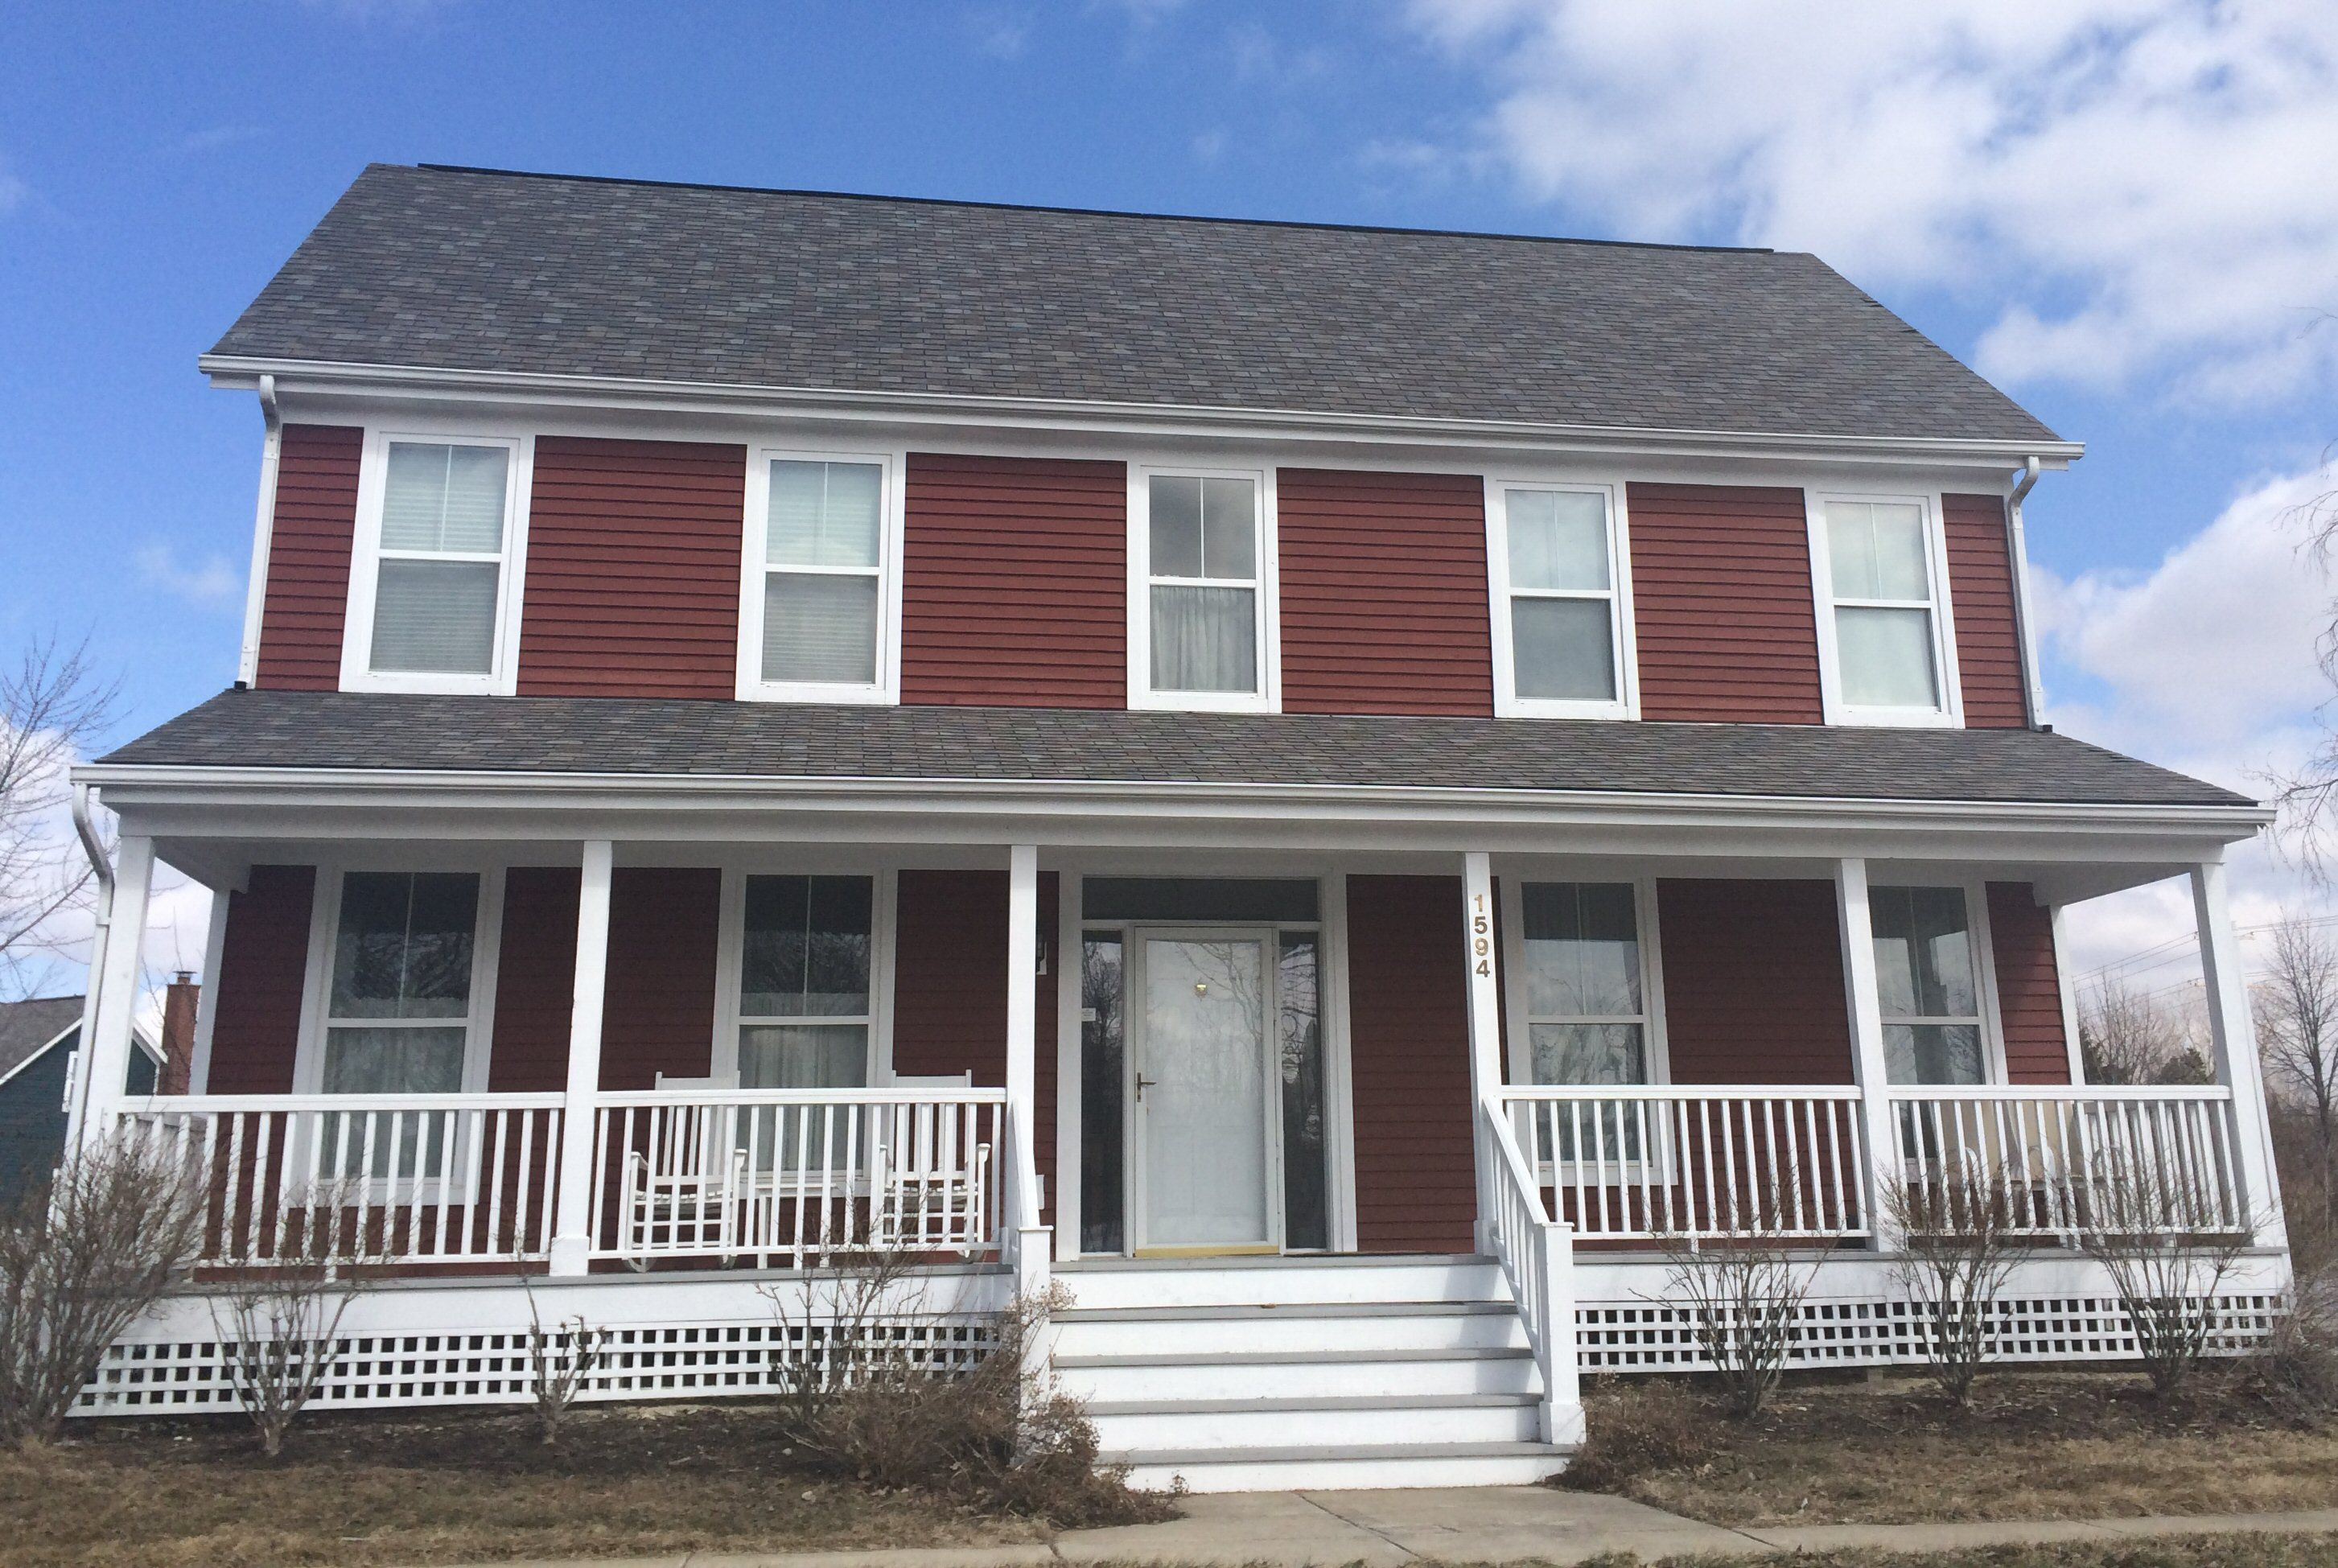 Two Story Red House With White Porch And Trim